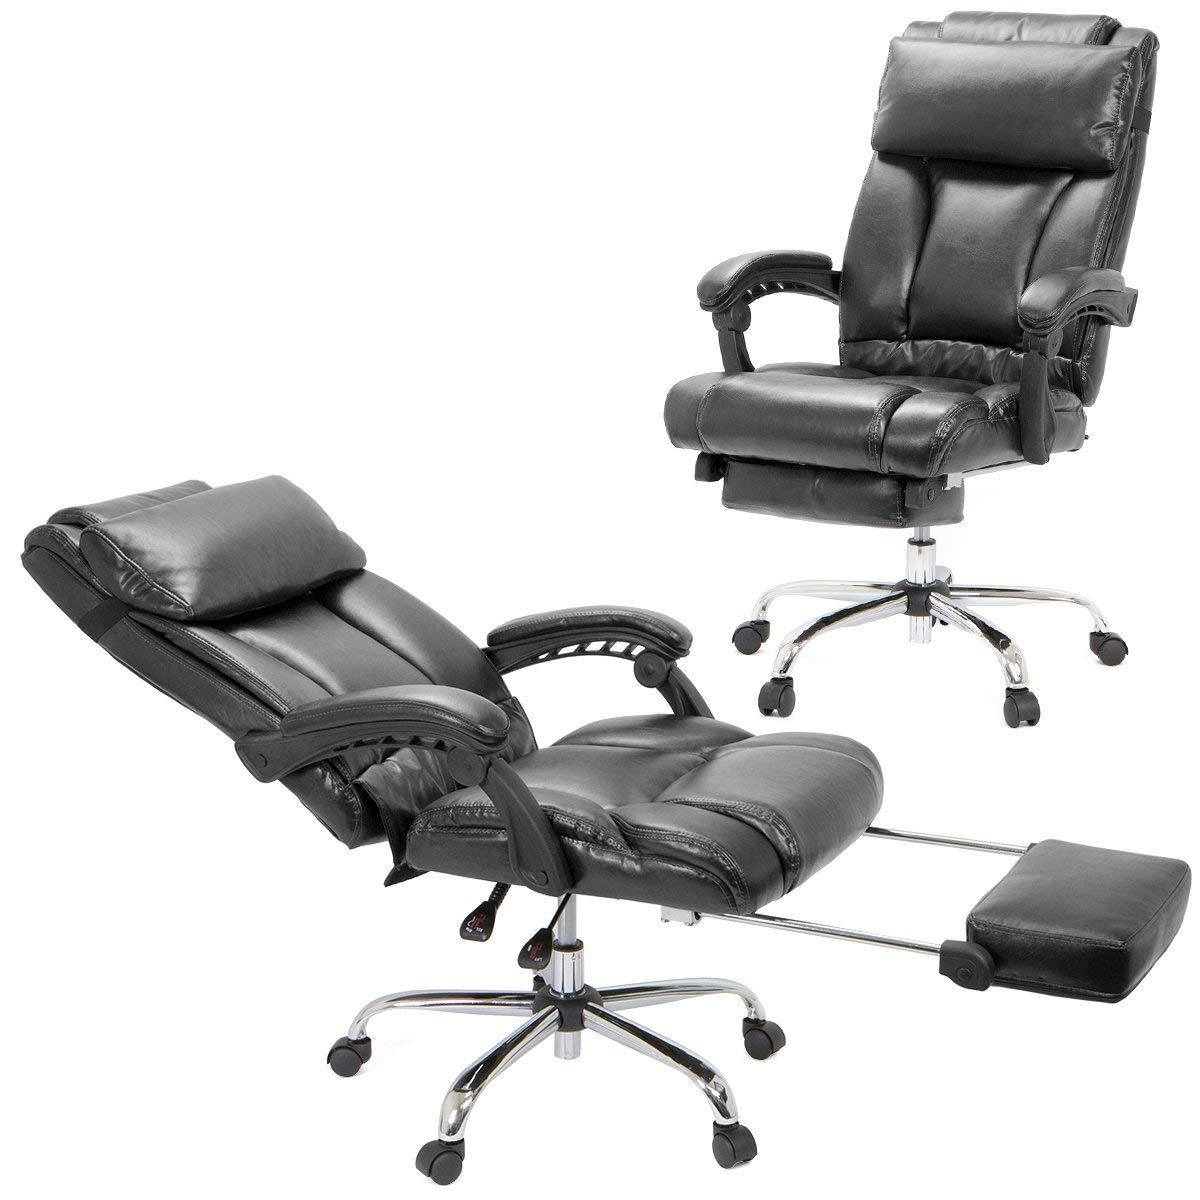 Barton High Back Office Chair with Extend Footrest Pad